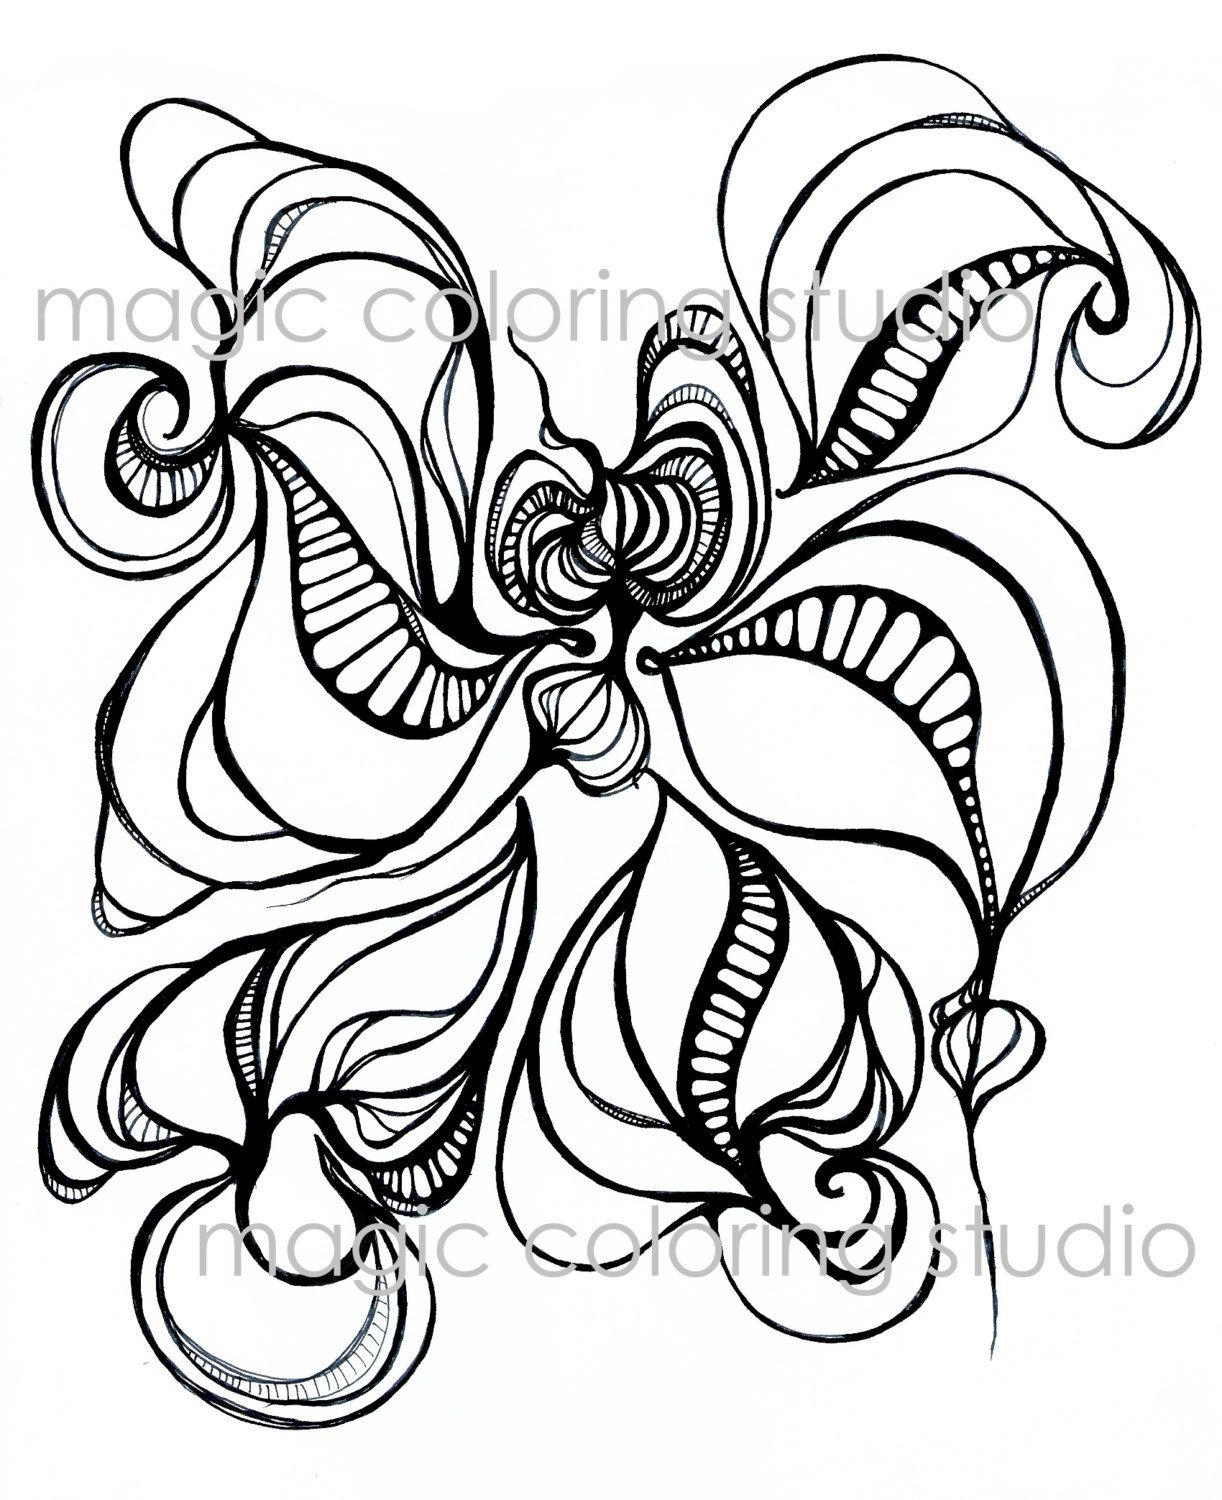 Ocean flower coloring page adult and children coloring page